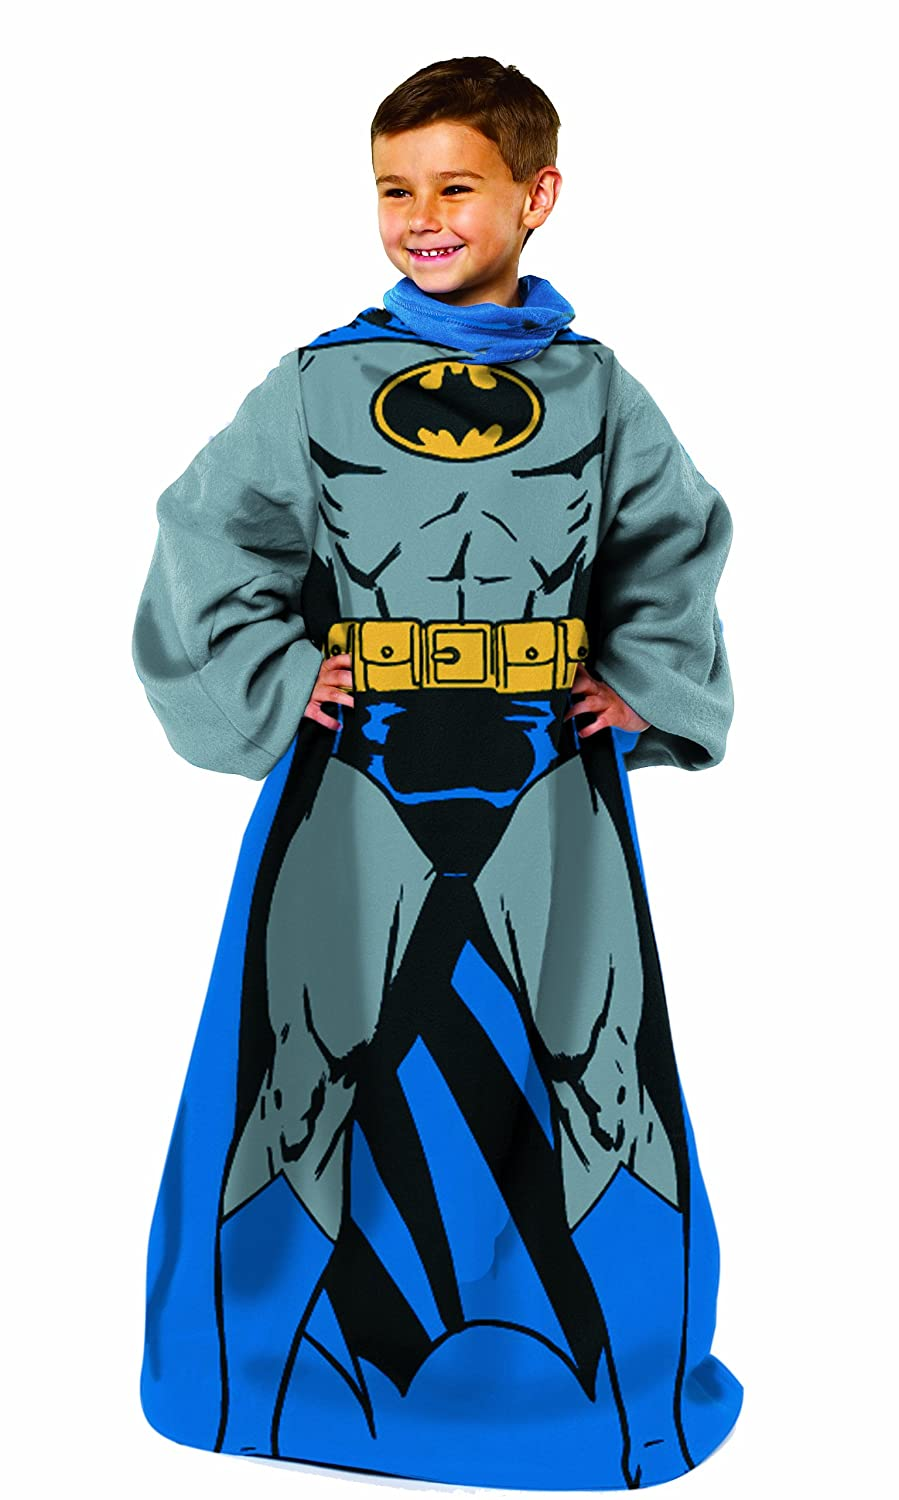 Batman,Being Batman Youth Comfy Throw Blanket with Sleeves, 48 x 48 48 x 48 Warner Brothers DC Comic BAT023000002RET